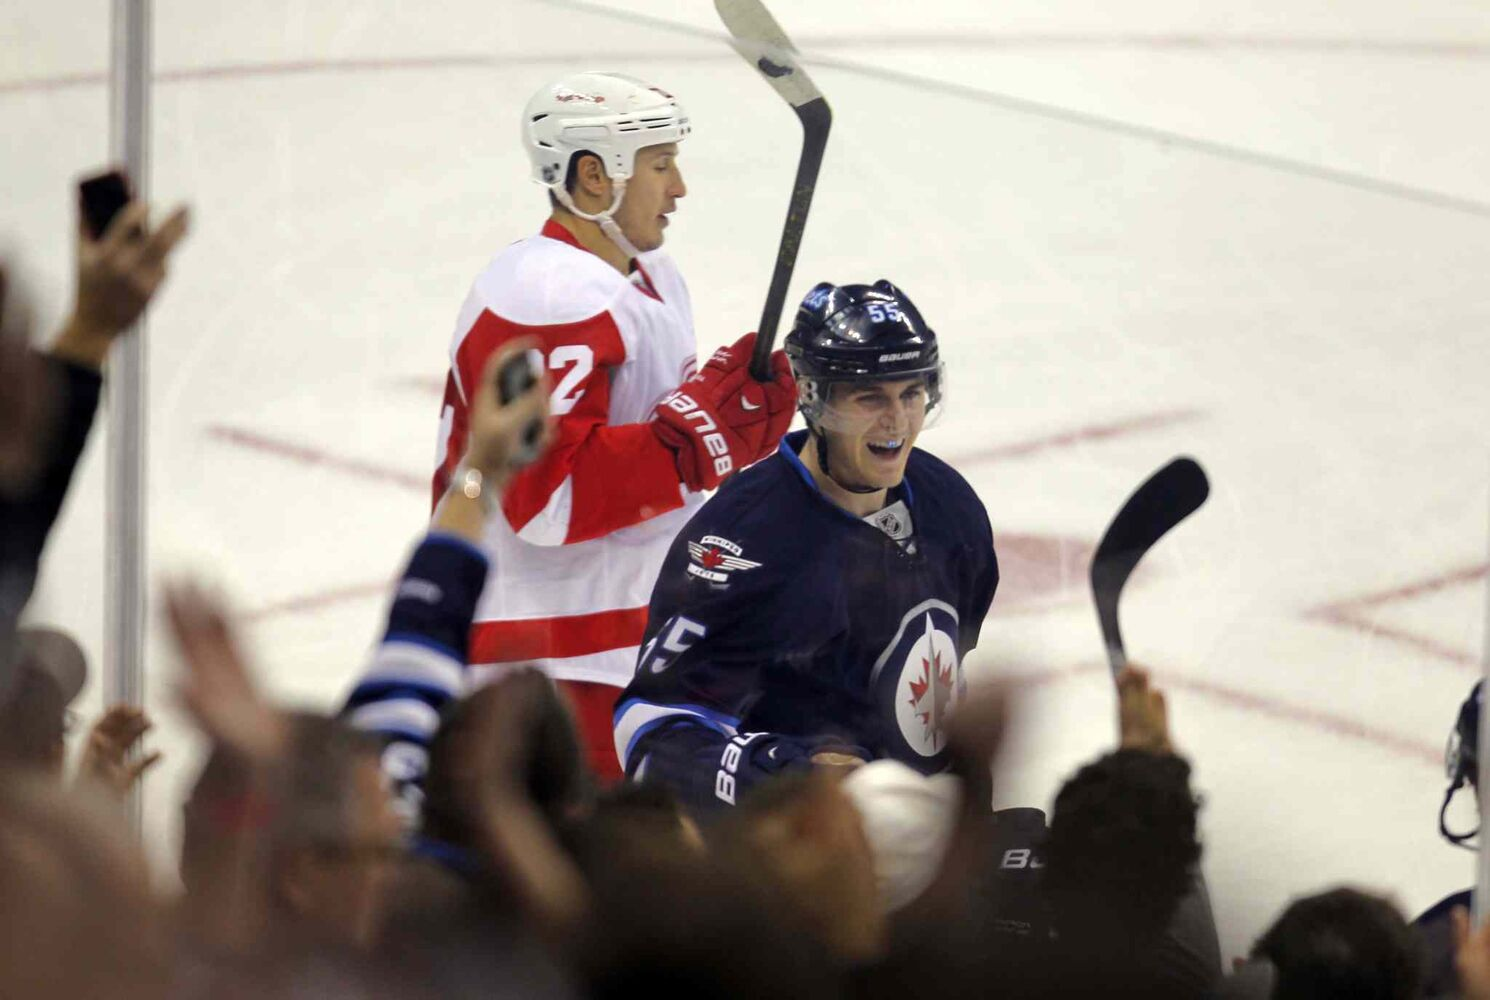 Winnipeg Jets forward Mark Scheifele celebrates teammate Michael Frolik's second-period goal as Detroit Red Wings forward Jordan Tootoo skates by. (BORIS MINKEVICH / WINNIPEG FREE PRESS )